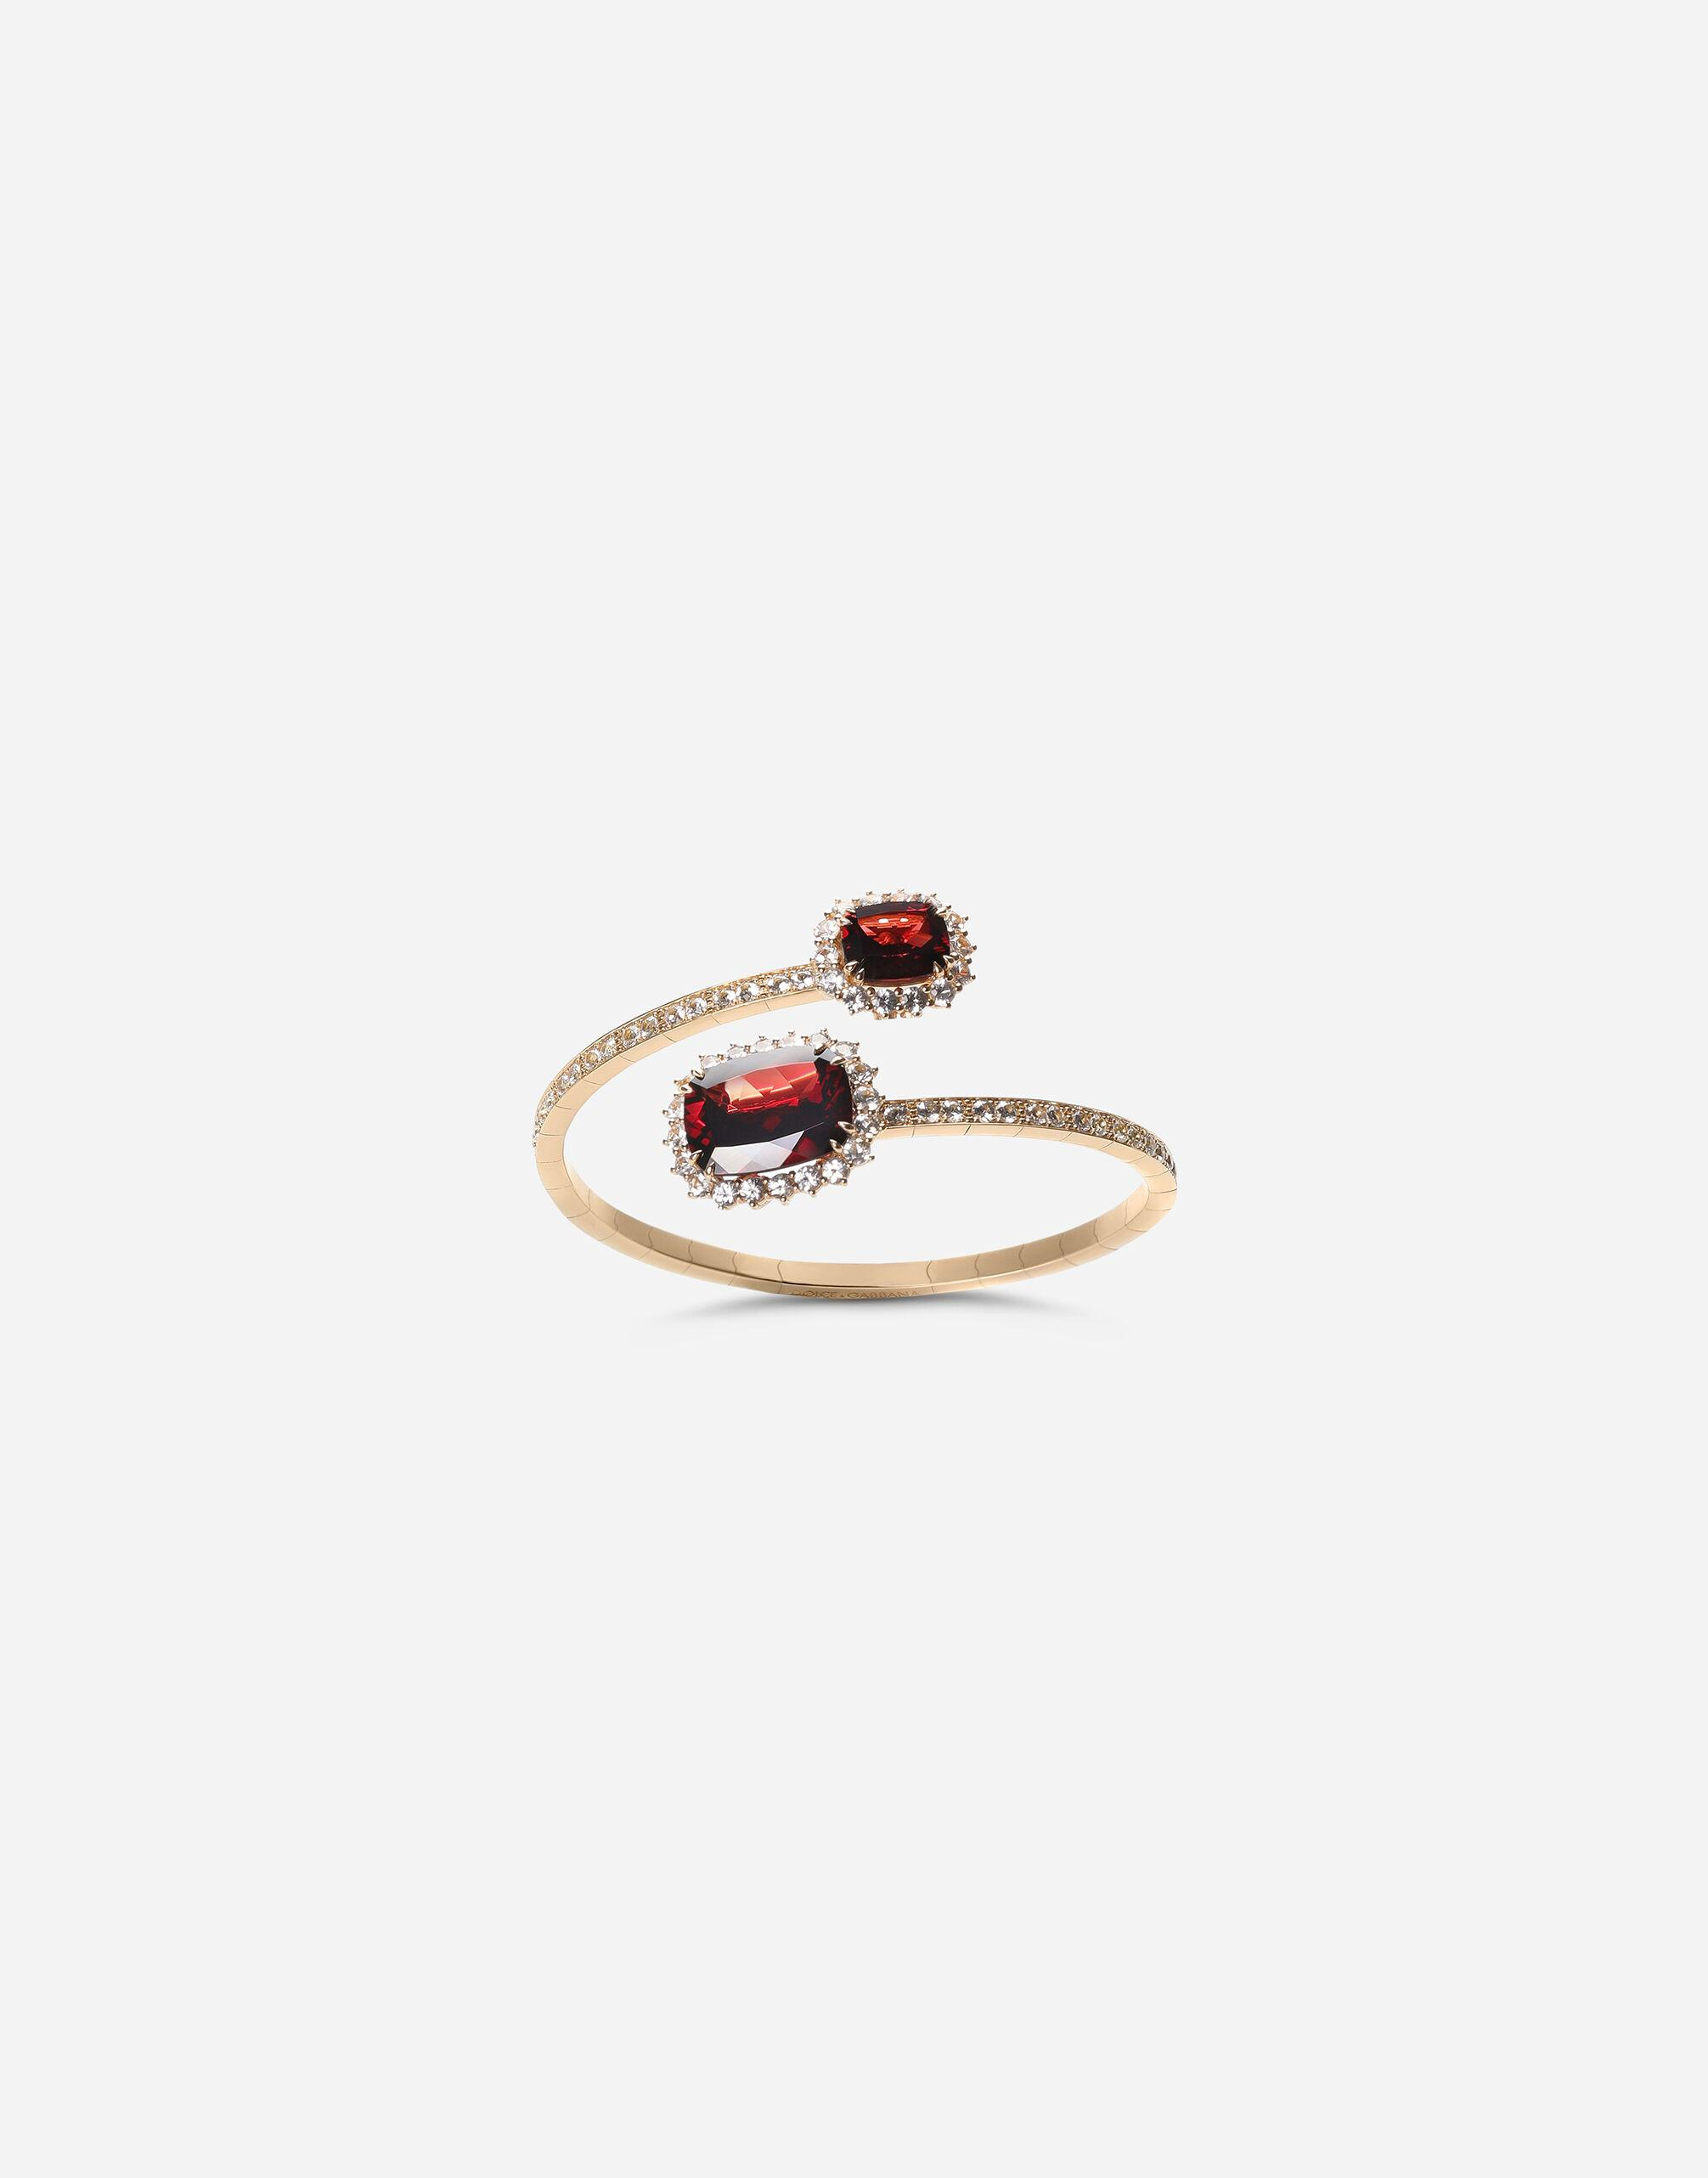 Heritage yellow gold bracelet with rodolith garnet and colourless sapphire